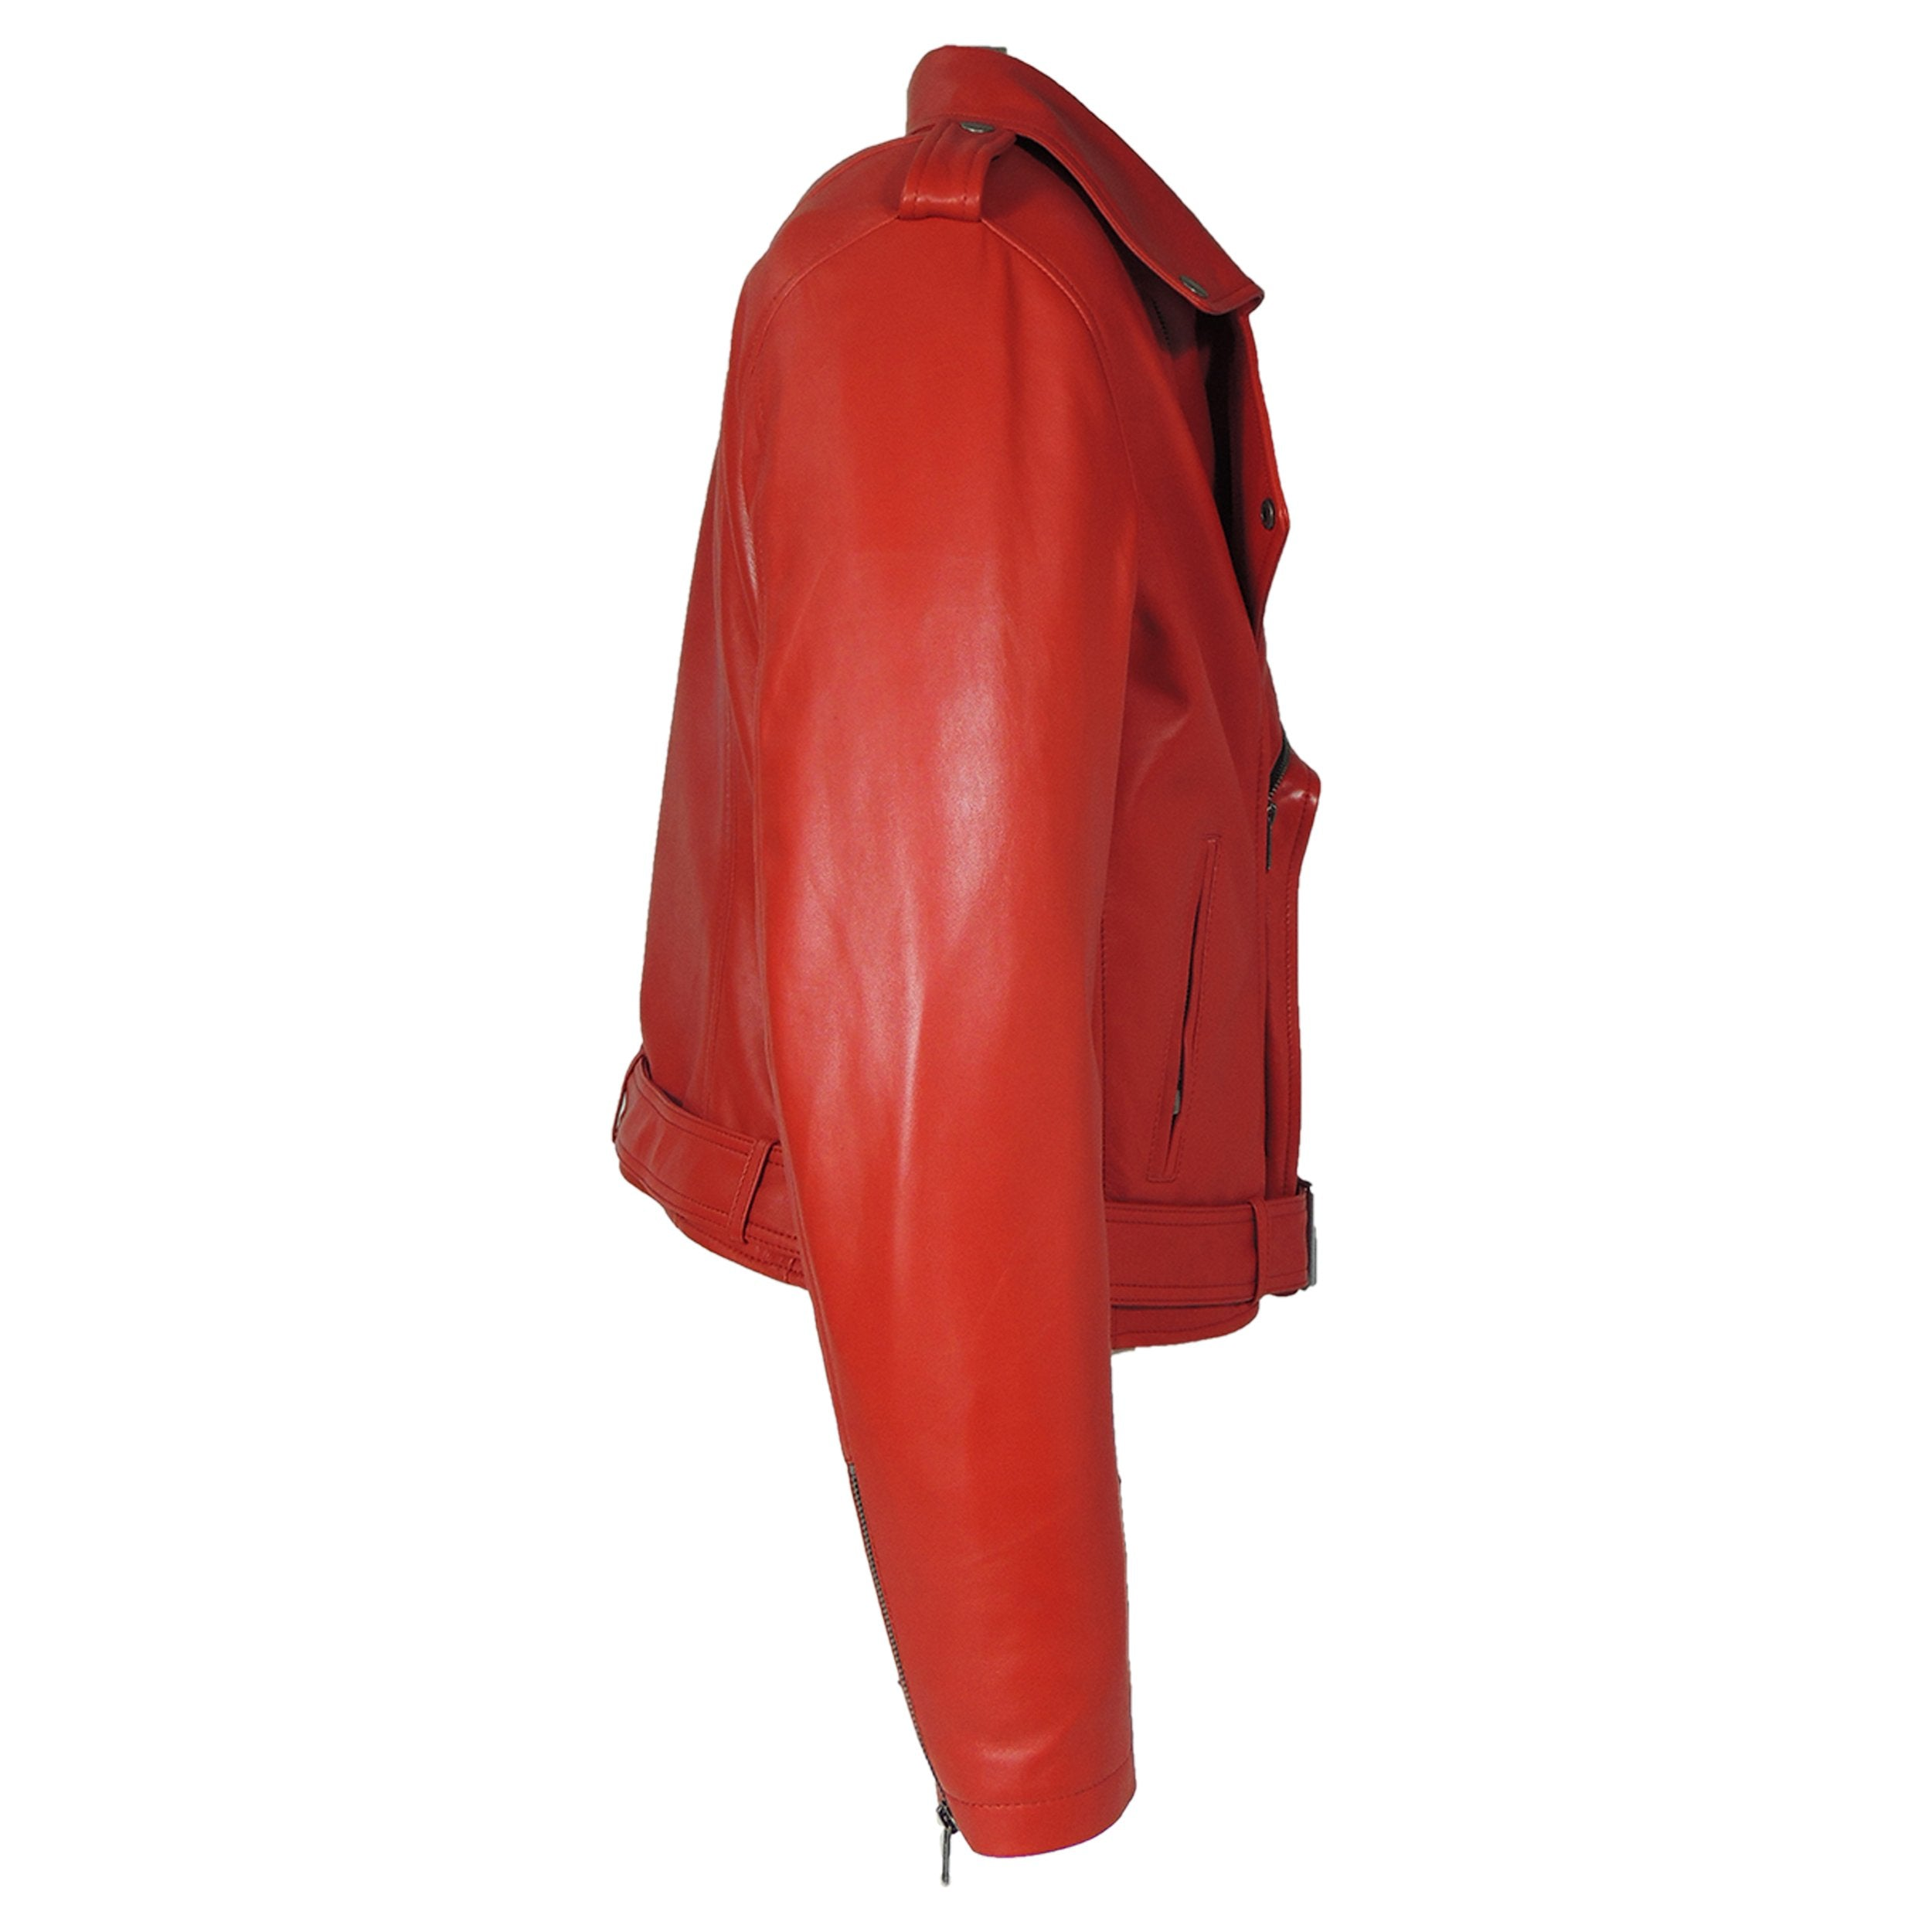 Womens Leather Jacket - Womens Moto Lipstick Red Leather Jacket